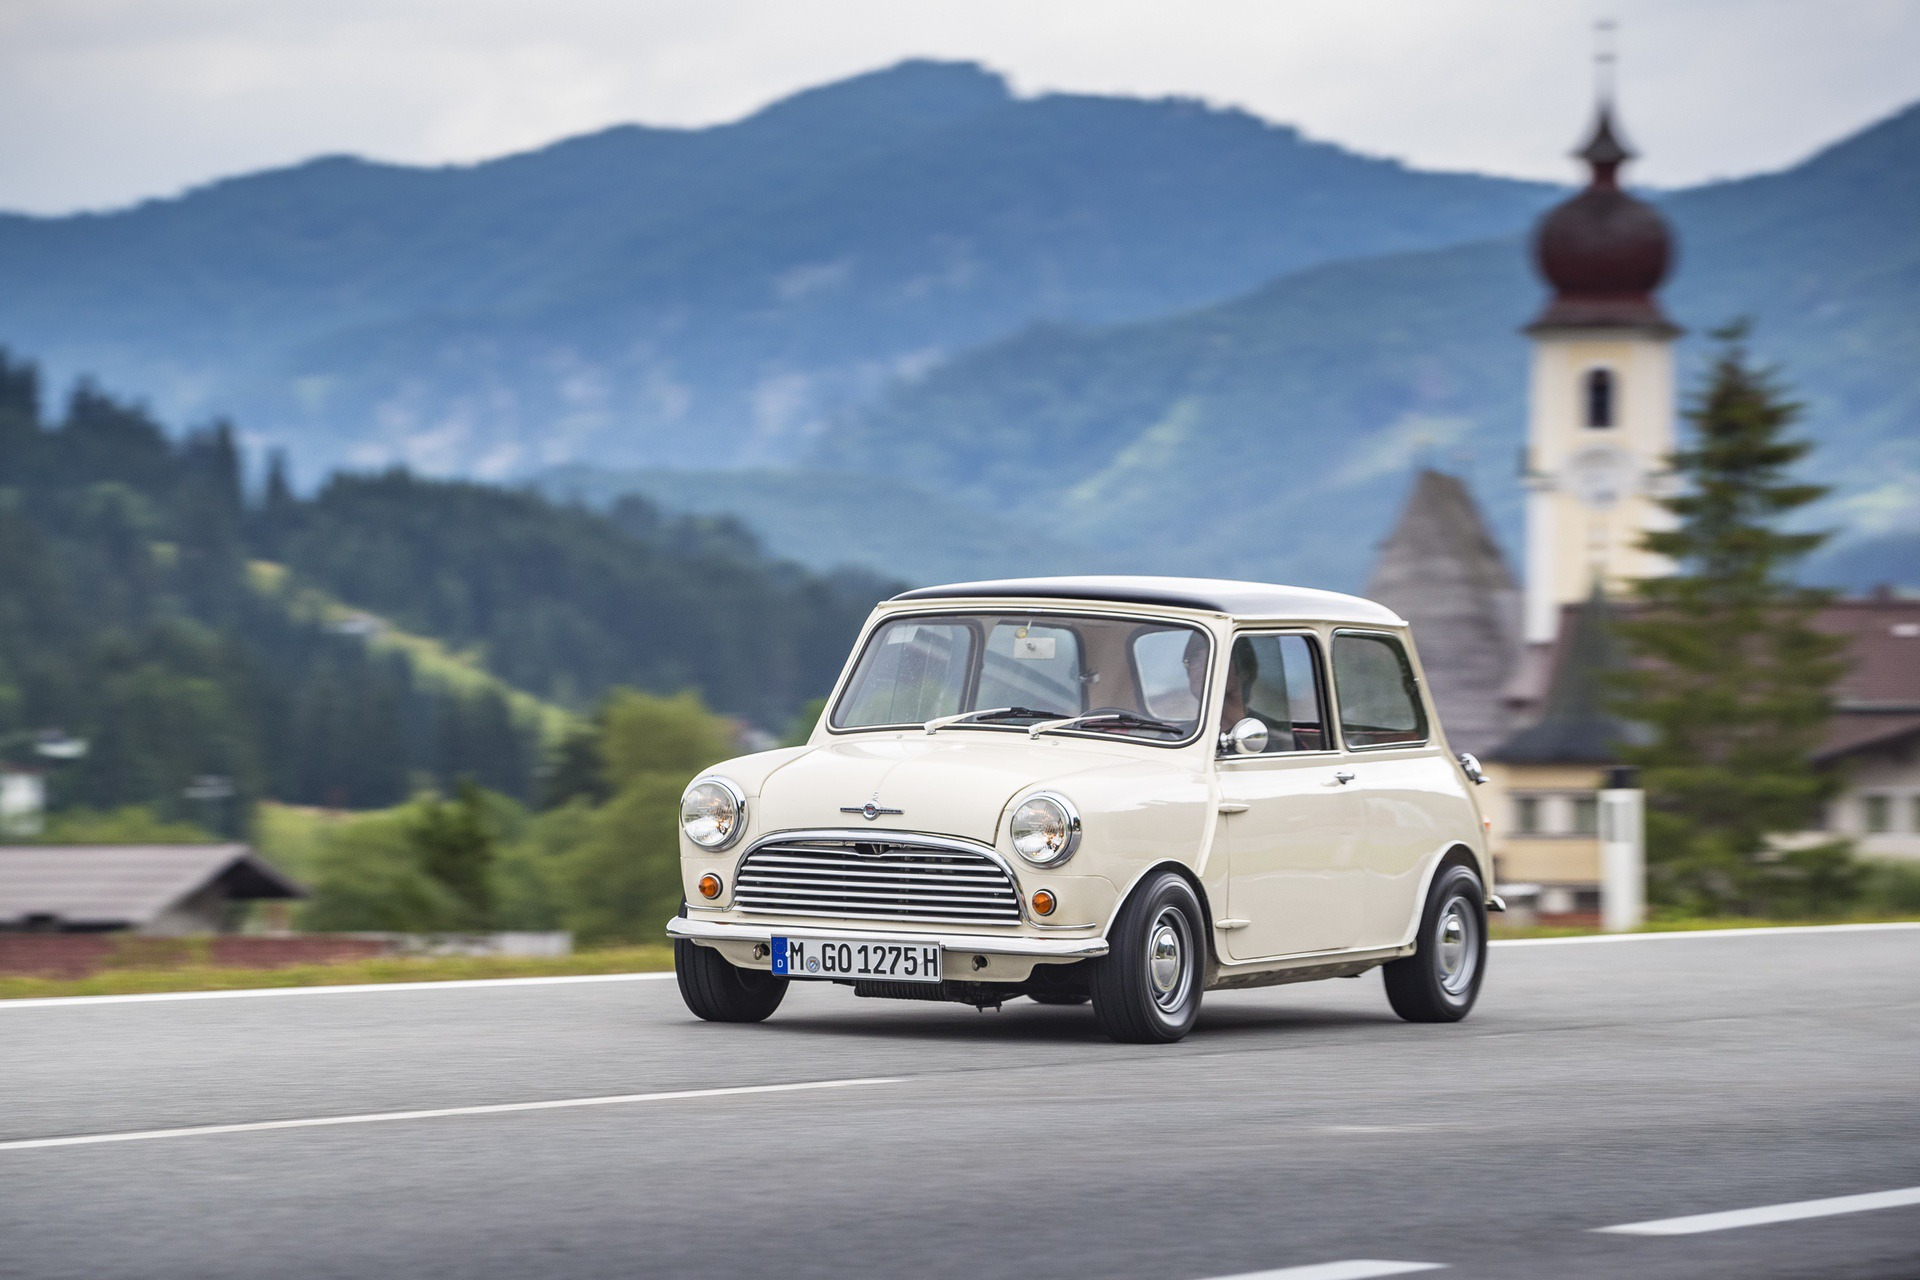 TEST DRIVE: 1959 Morris Mini 850 and 1967 Cooper S 1275 GT - Minimalism